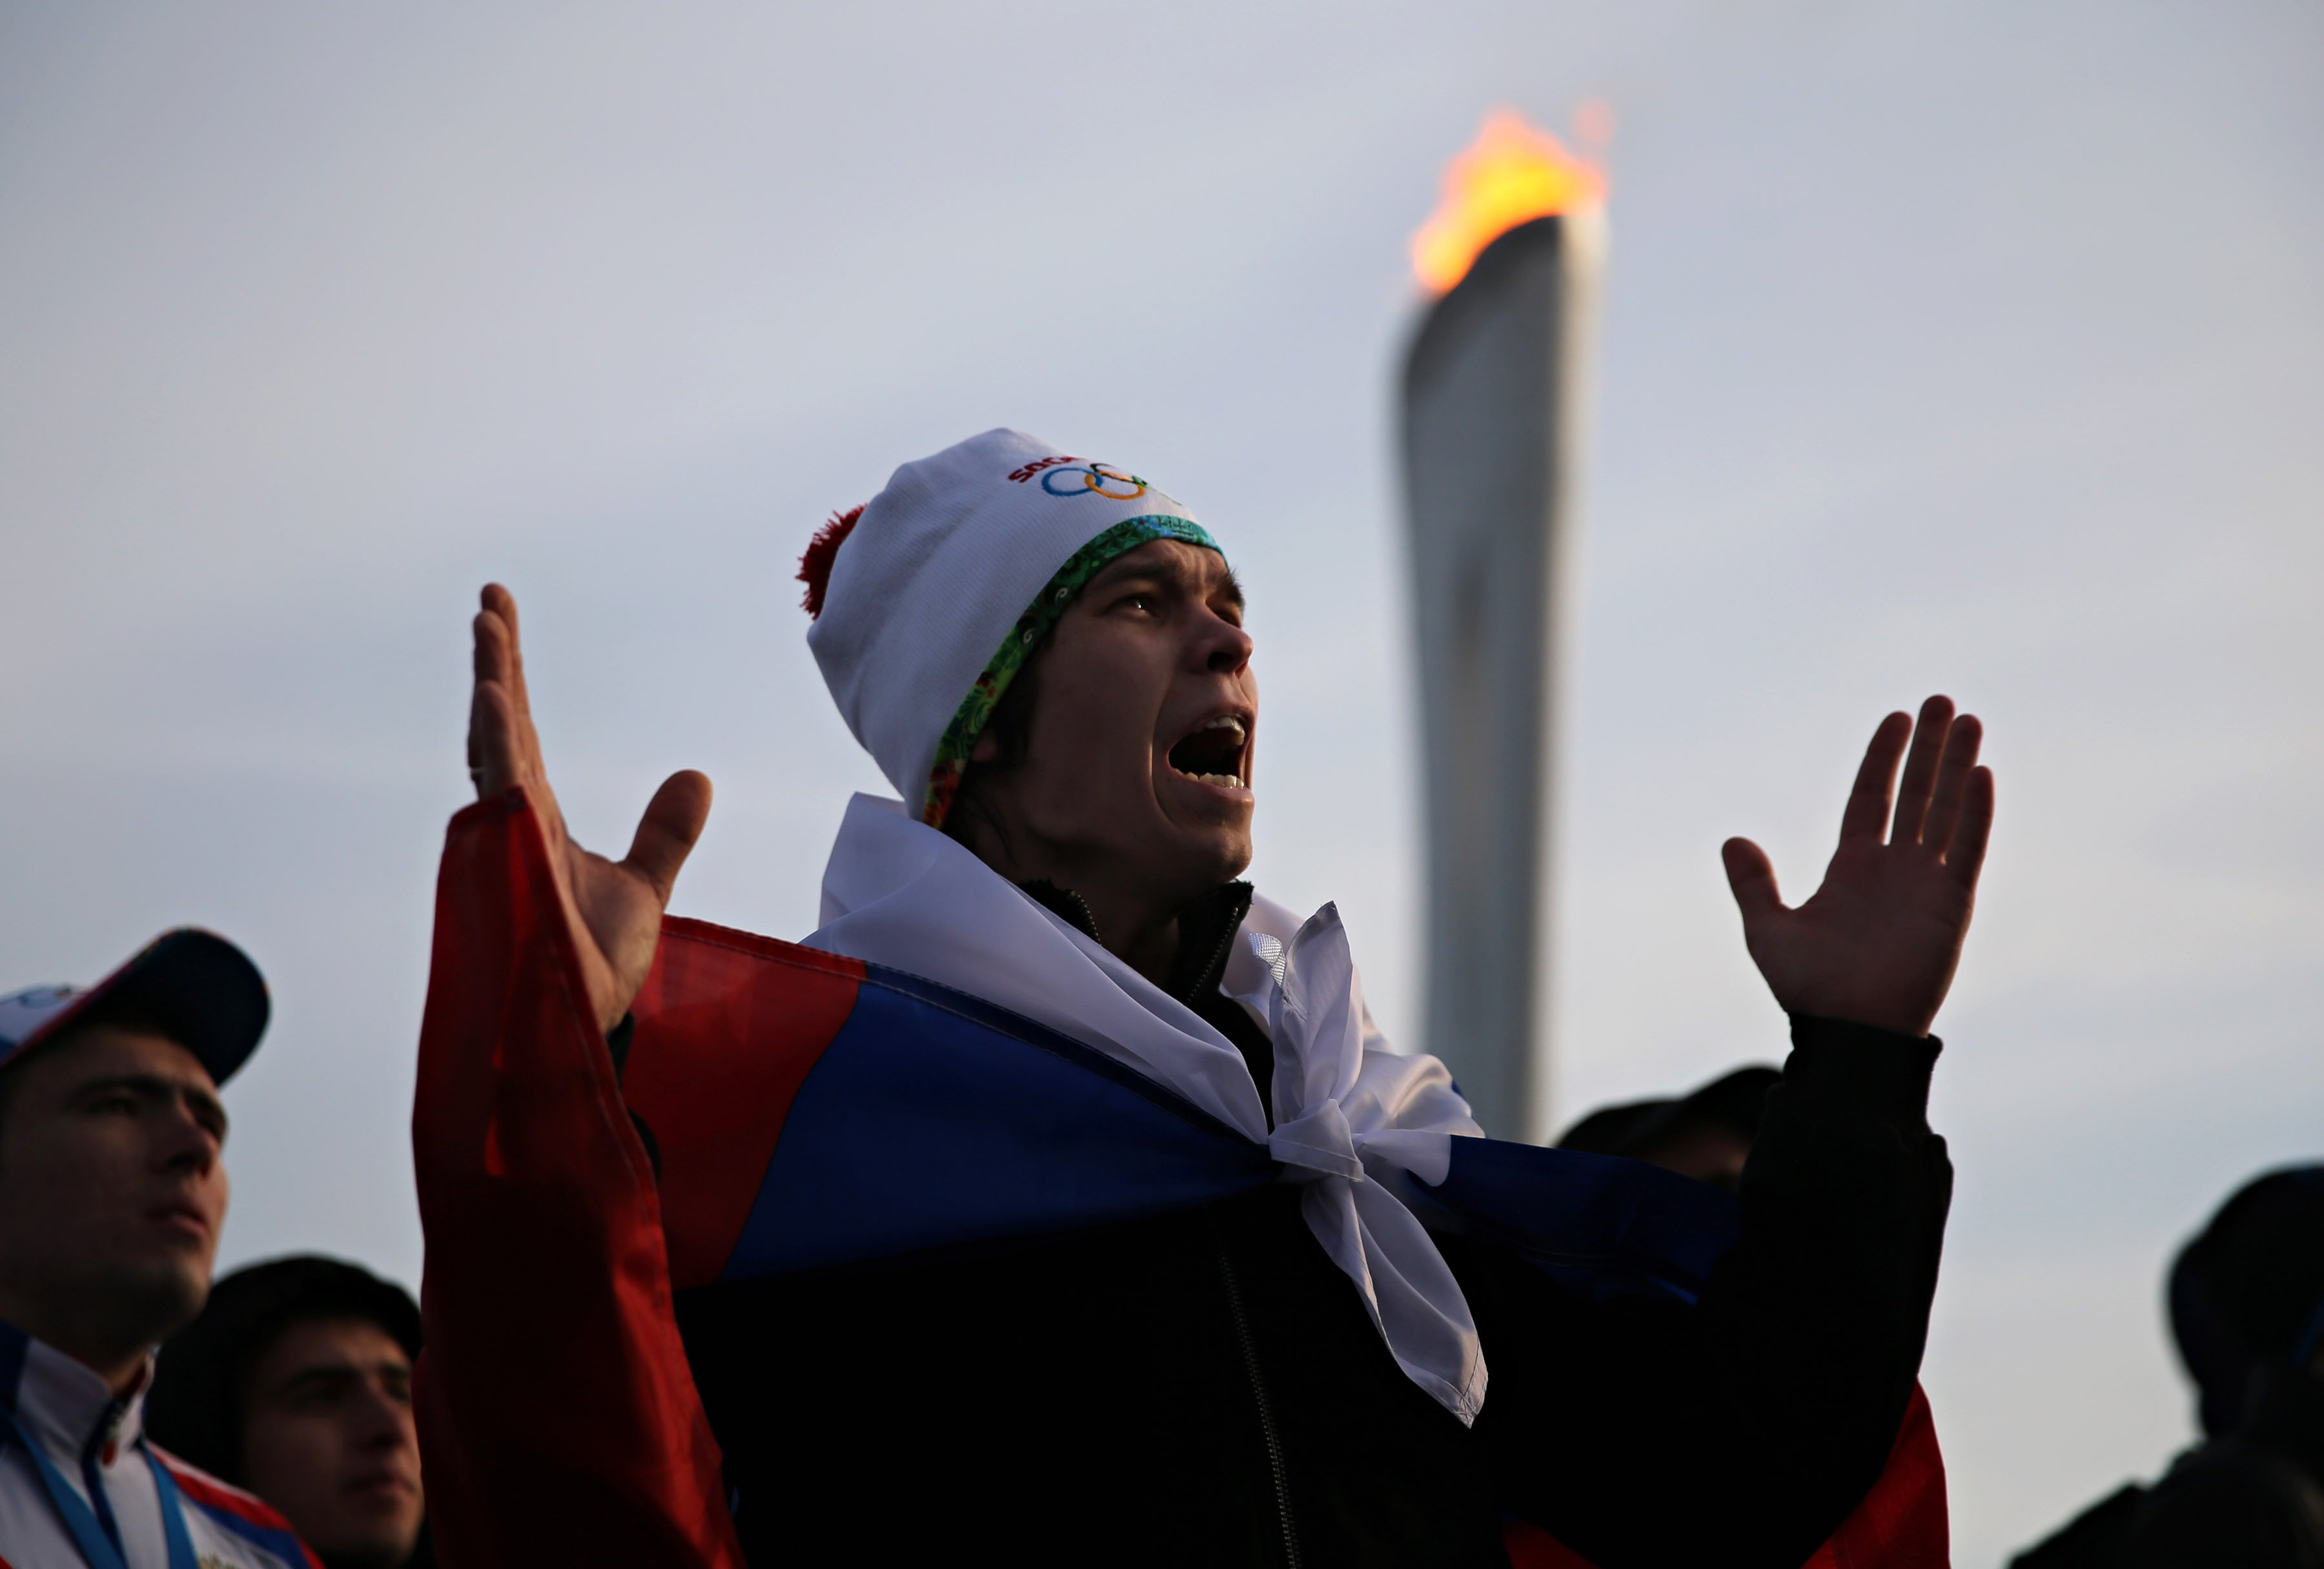 A fan wearing a Russian flag in Olympic Park reacts during Russia's 3-1 loss to Finland in men's ice hockey.